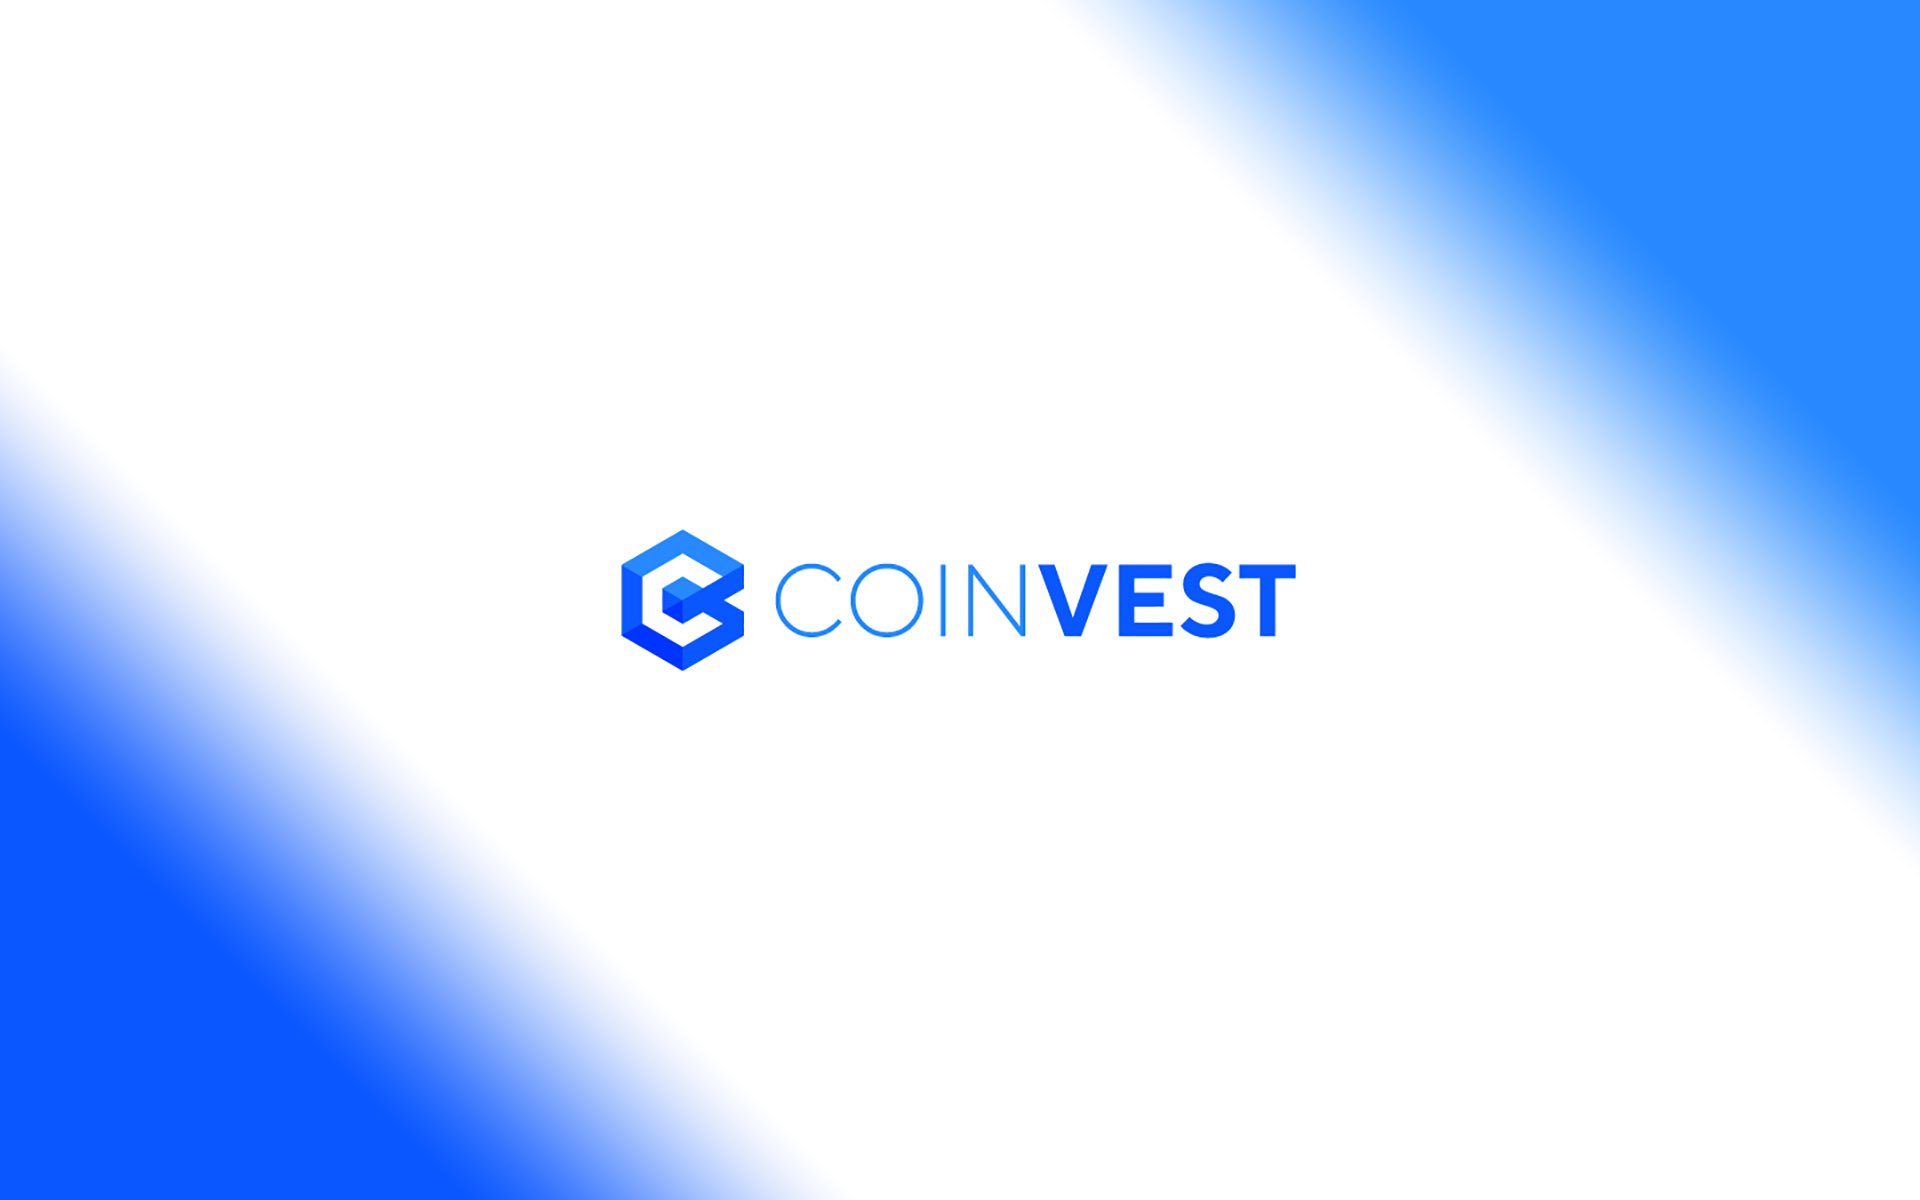 Coinvest Announces Premium Hardware Wallet with Innovative Design and Architecture to Securely Store Cryptonized Assets